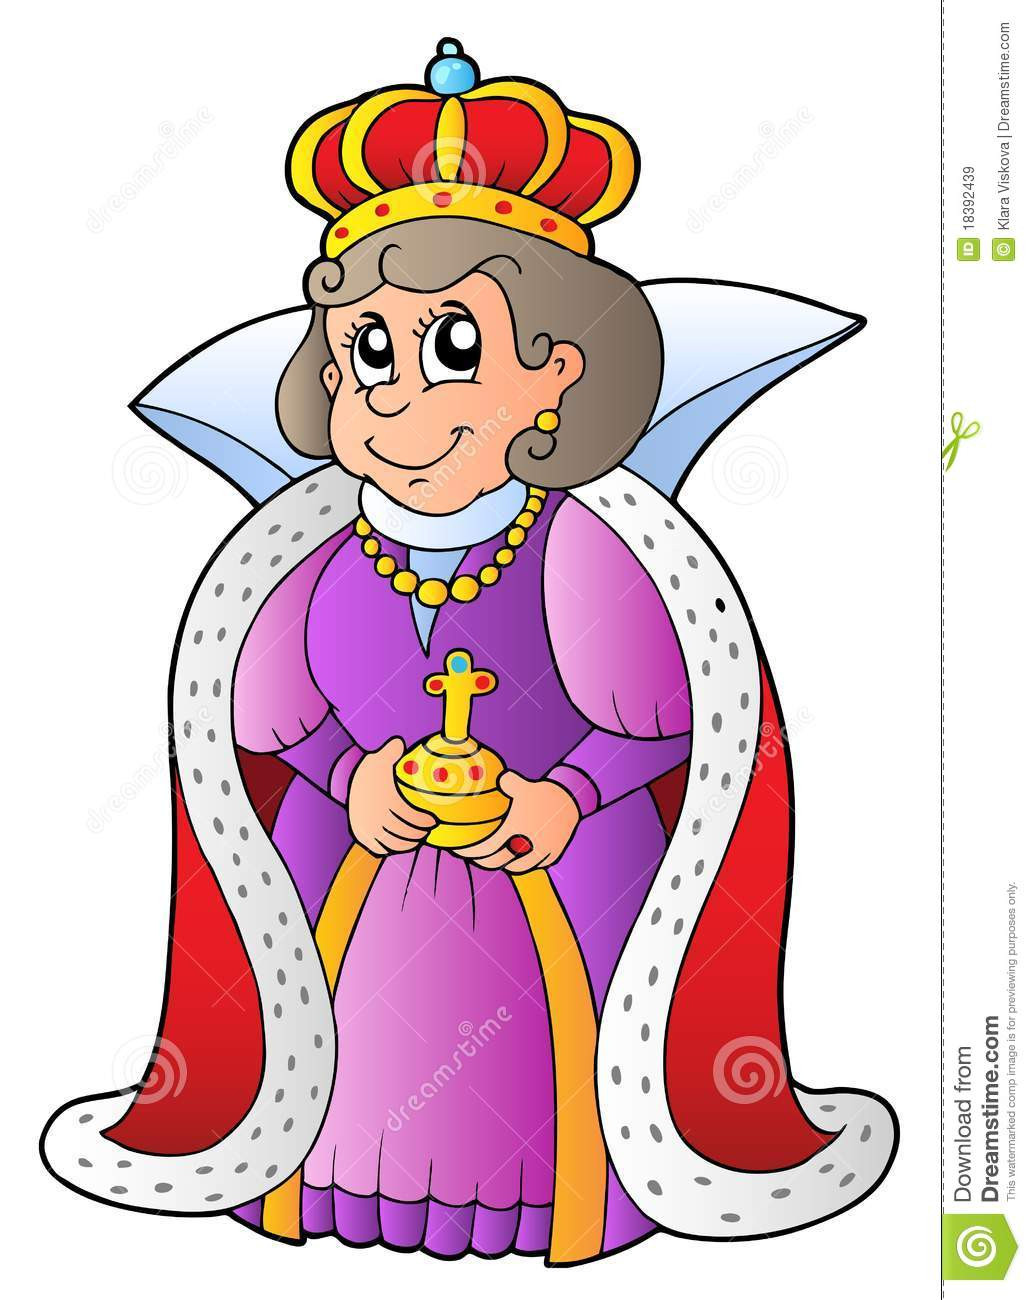 queen clipart at getdrawings com free for personal use queen rh getdrawings com queen clip art outline queen clip art images